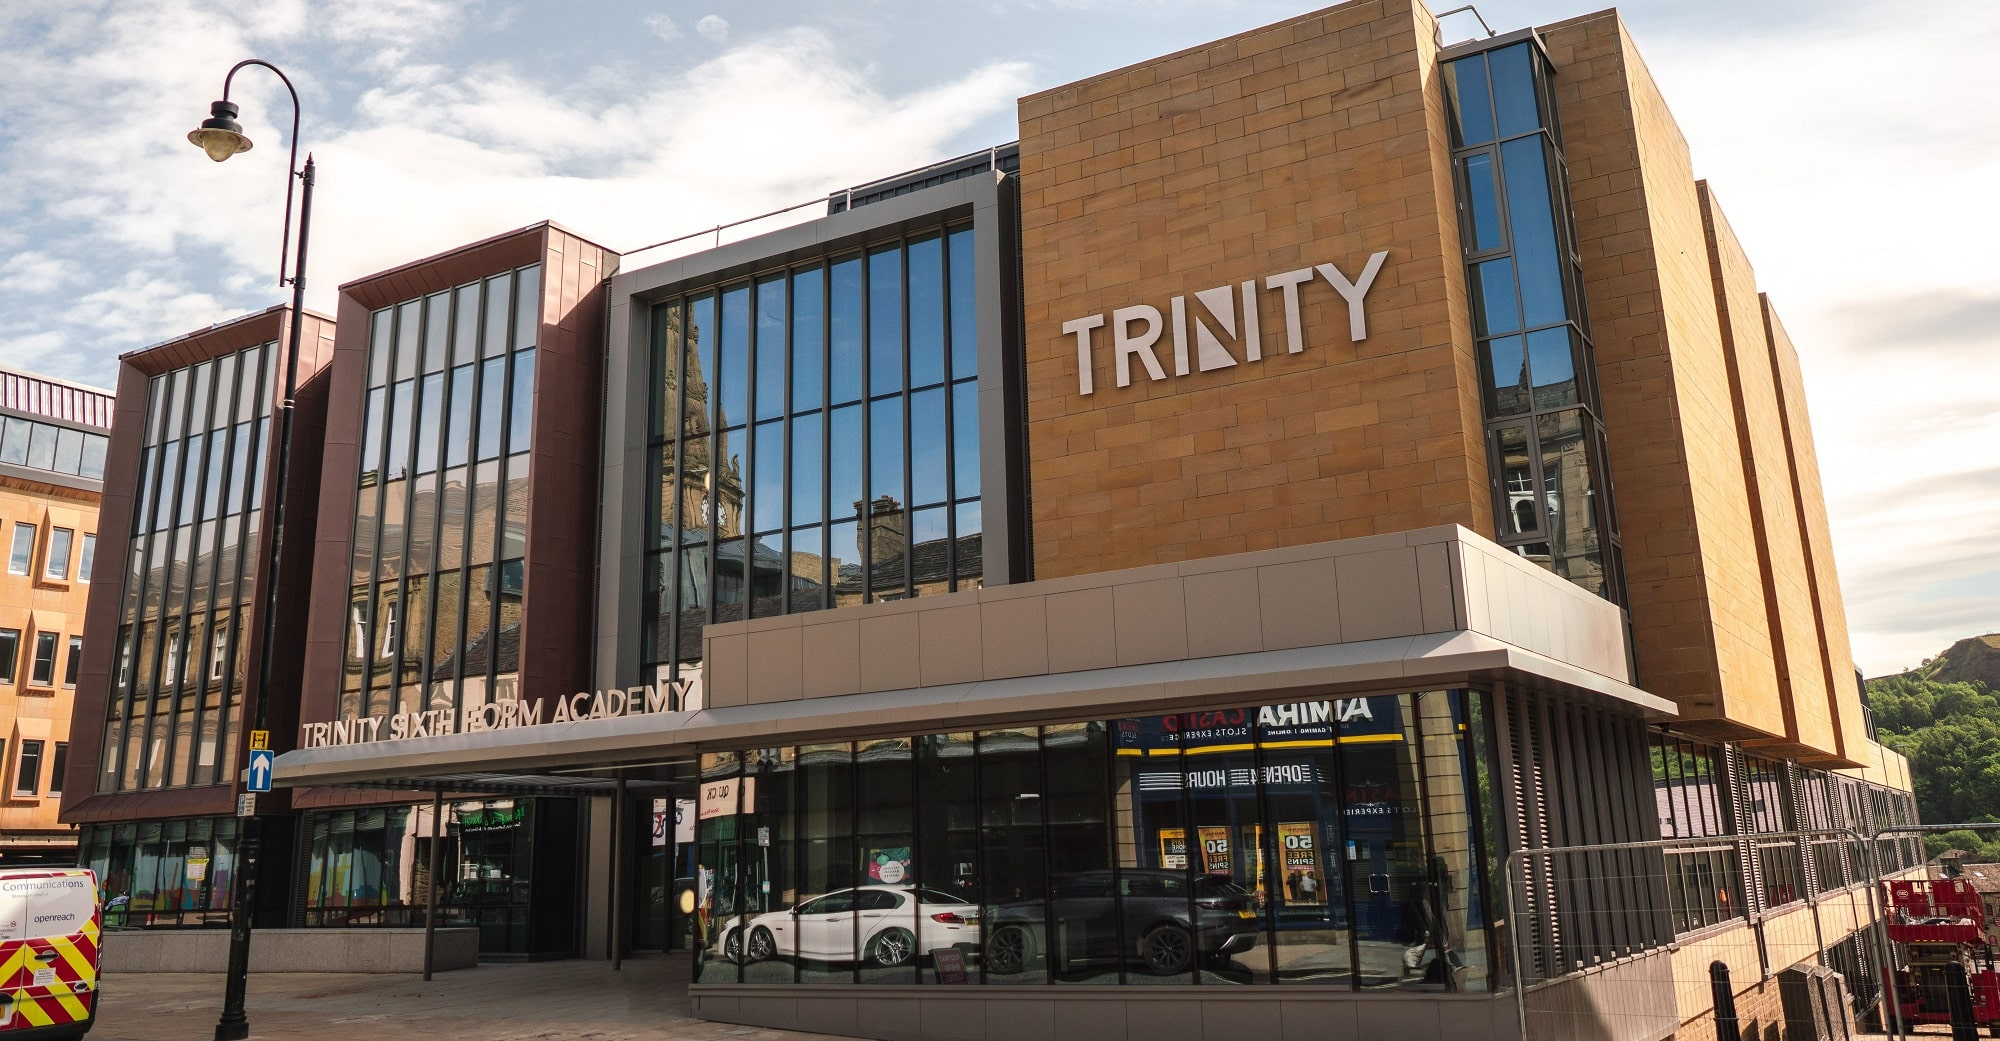 Trinity 6th Form Academy front